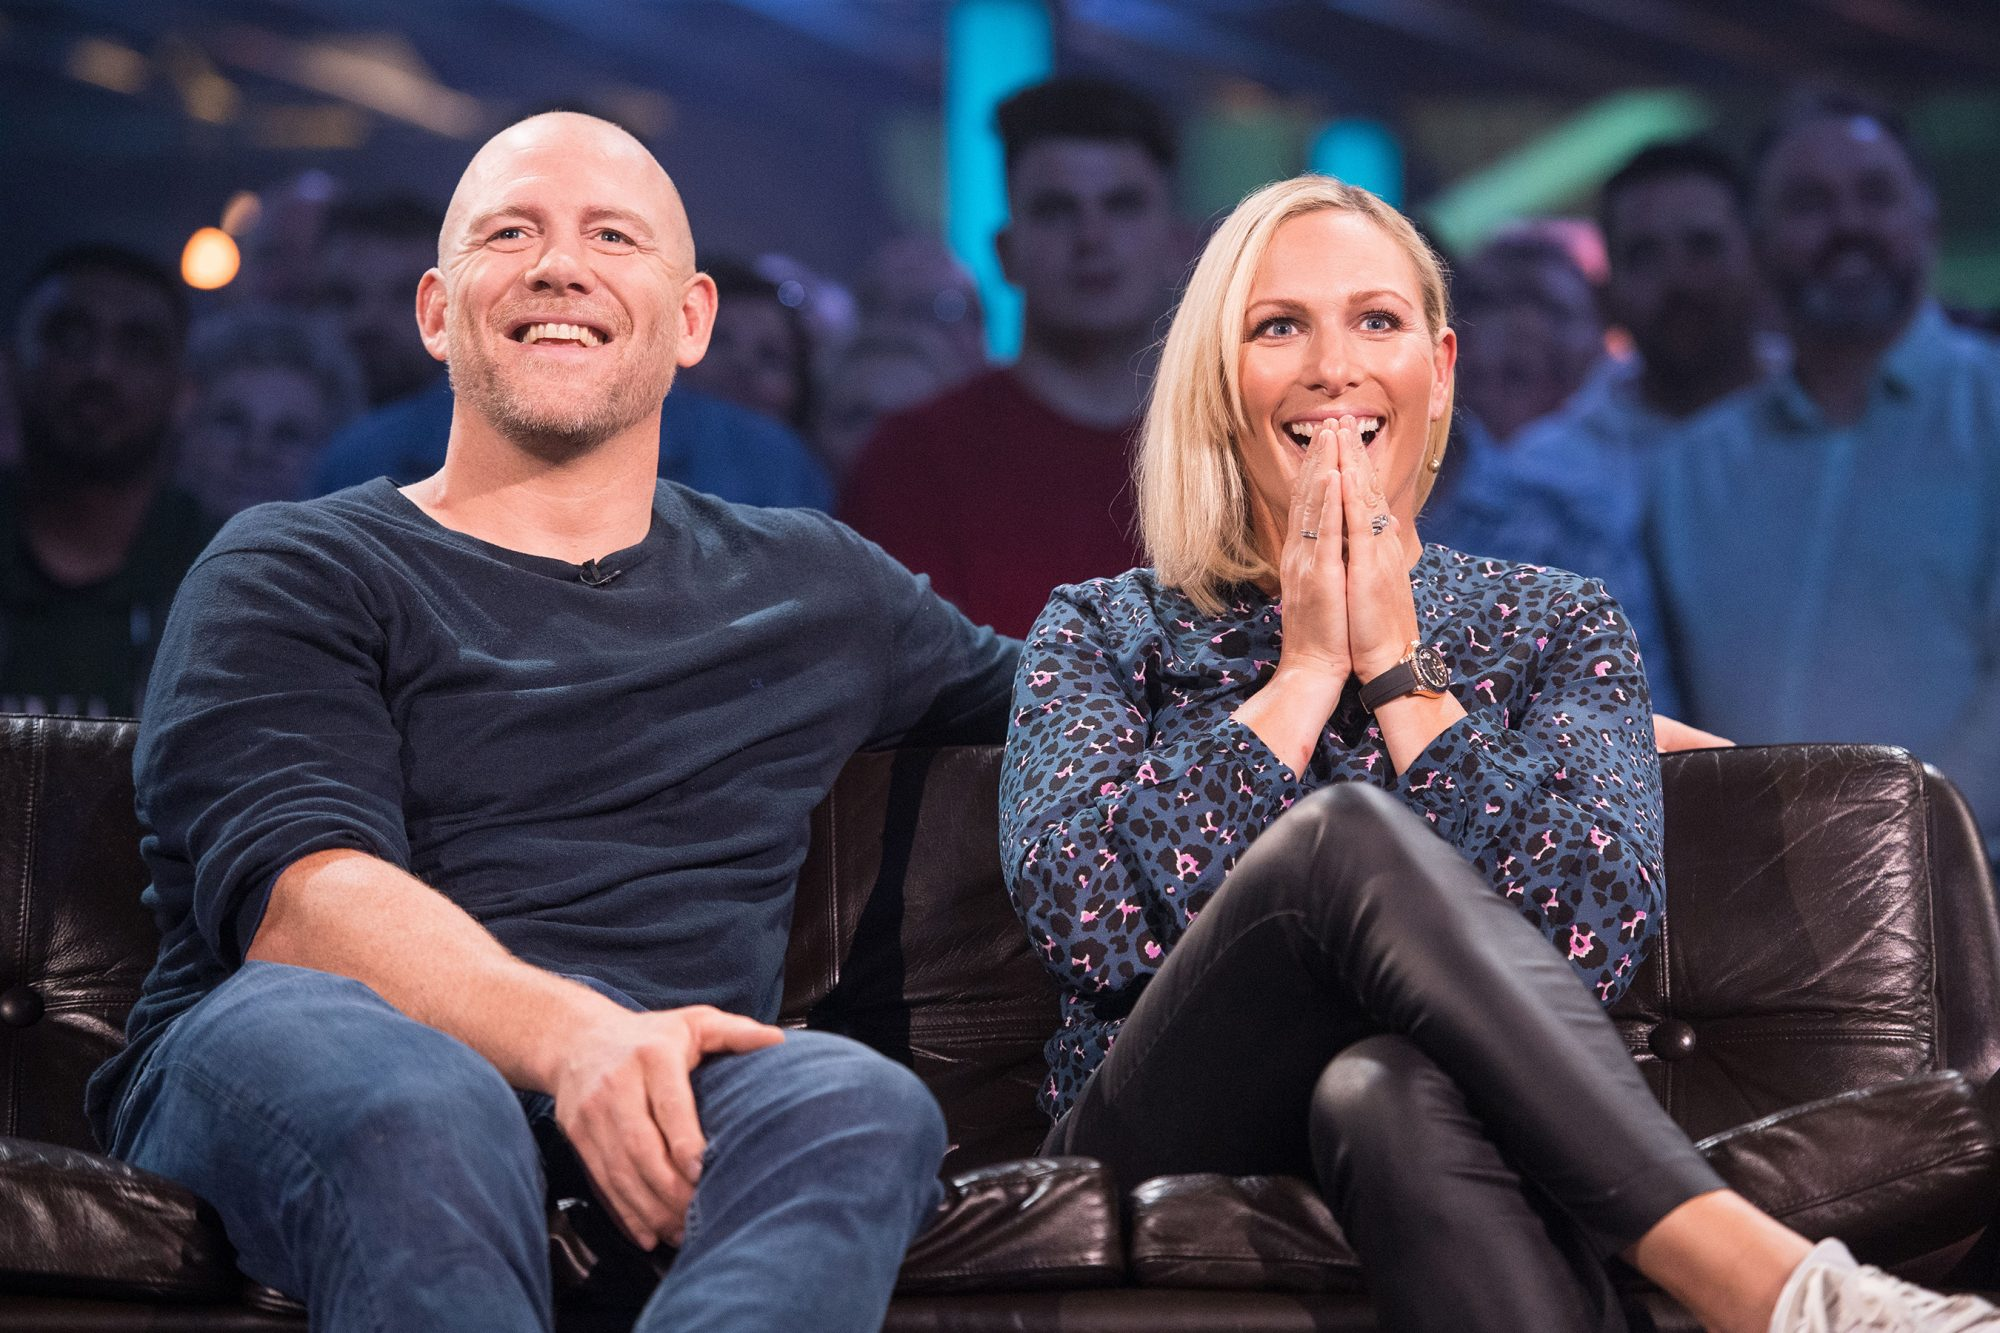 Top Gear Series 27 - TX: n/a - Episode: n/a (No. 3) - Picture Shows: Mike Tindall MBE, Zara Tindall MBE